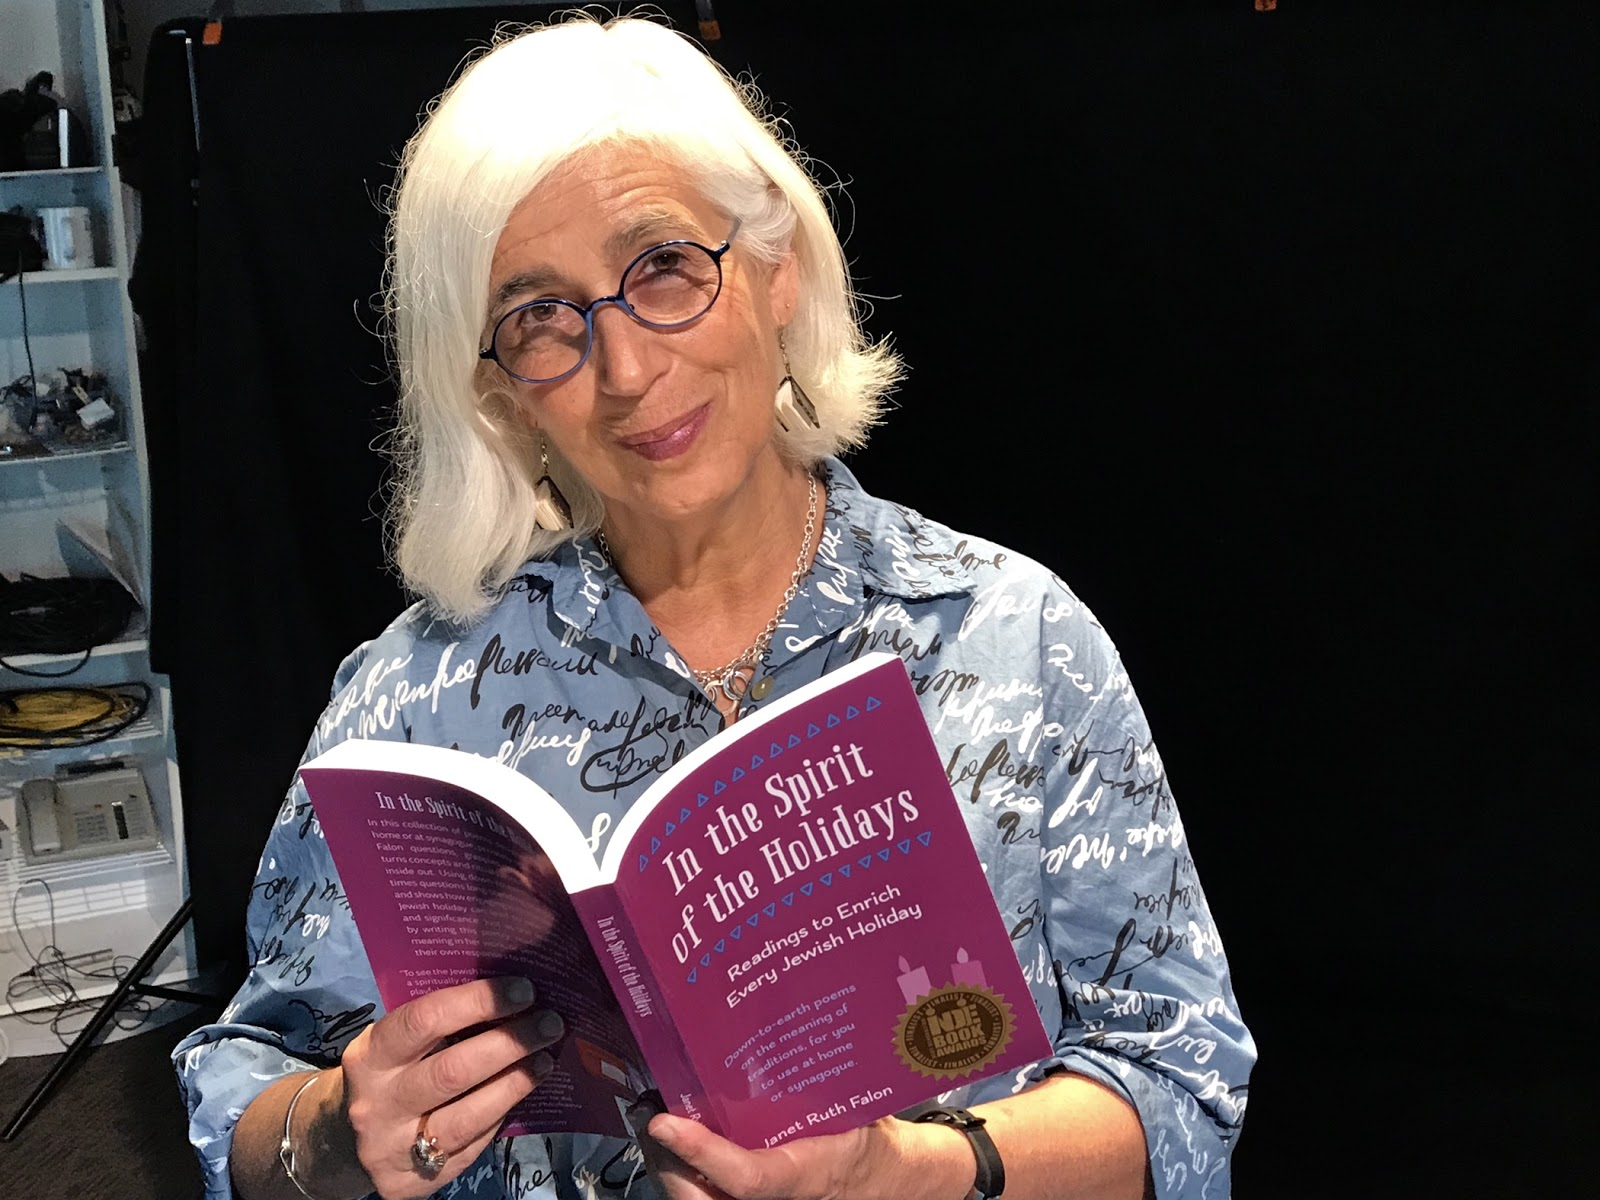 Local poet writes about turning to faith, finding meaning during Jewish holidays